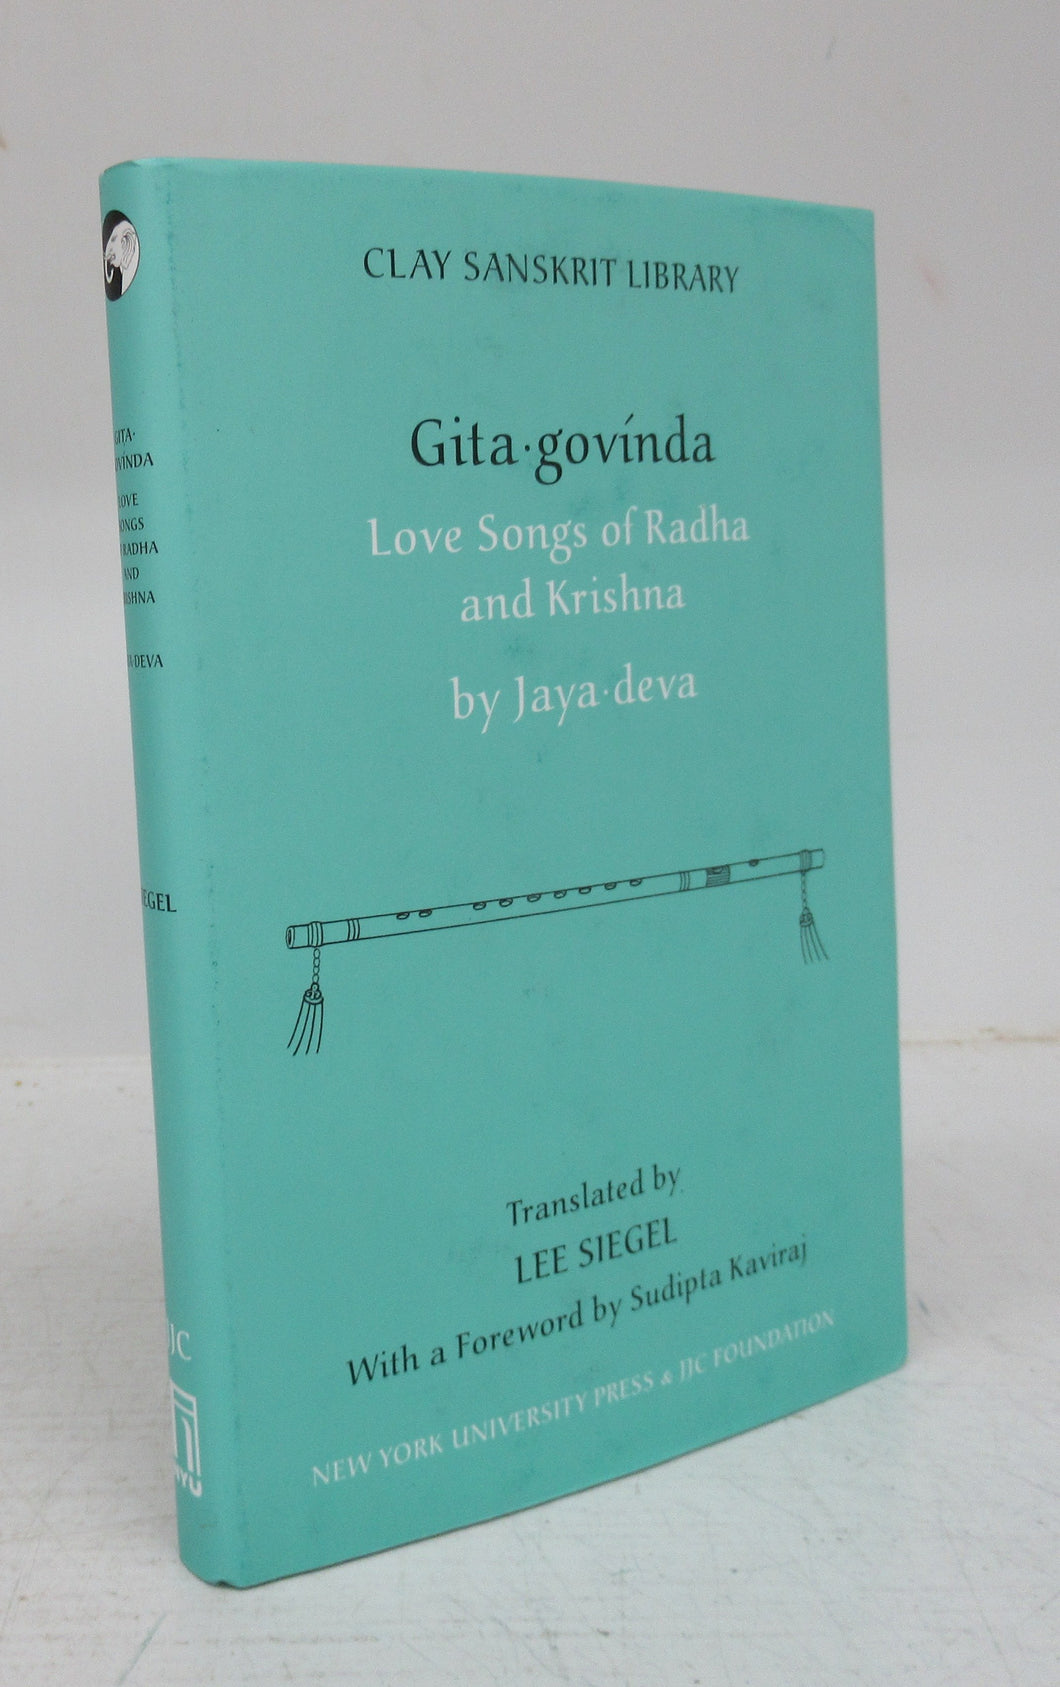 Love Songs of Radha and Krishna